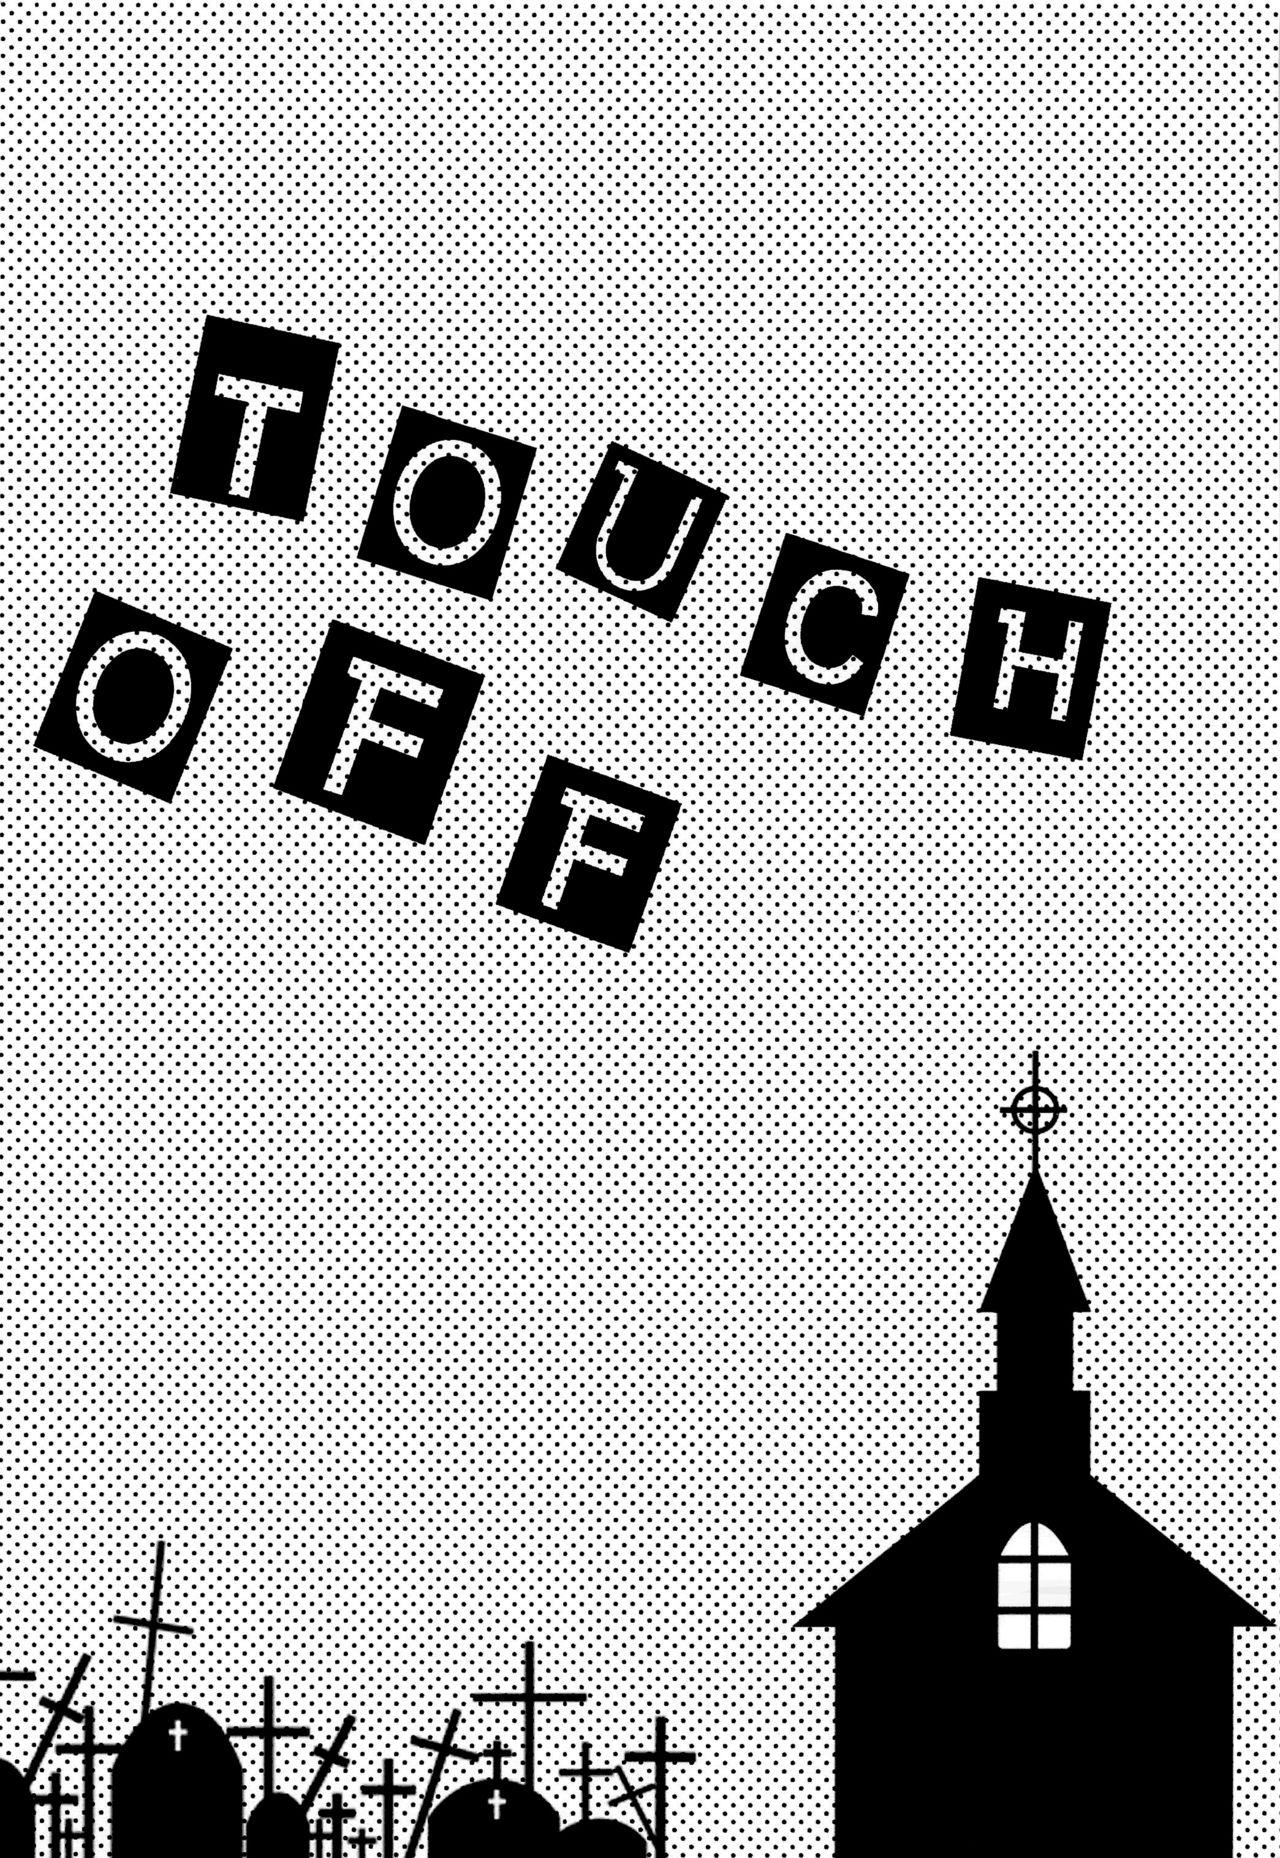 Touch off 10